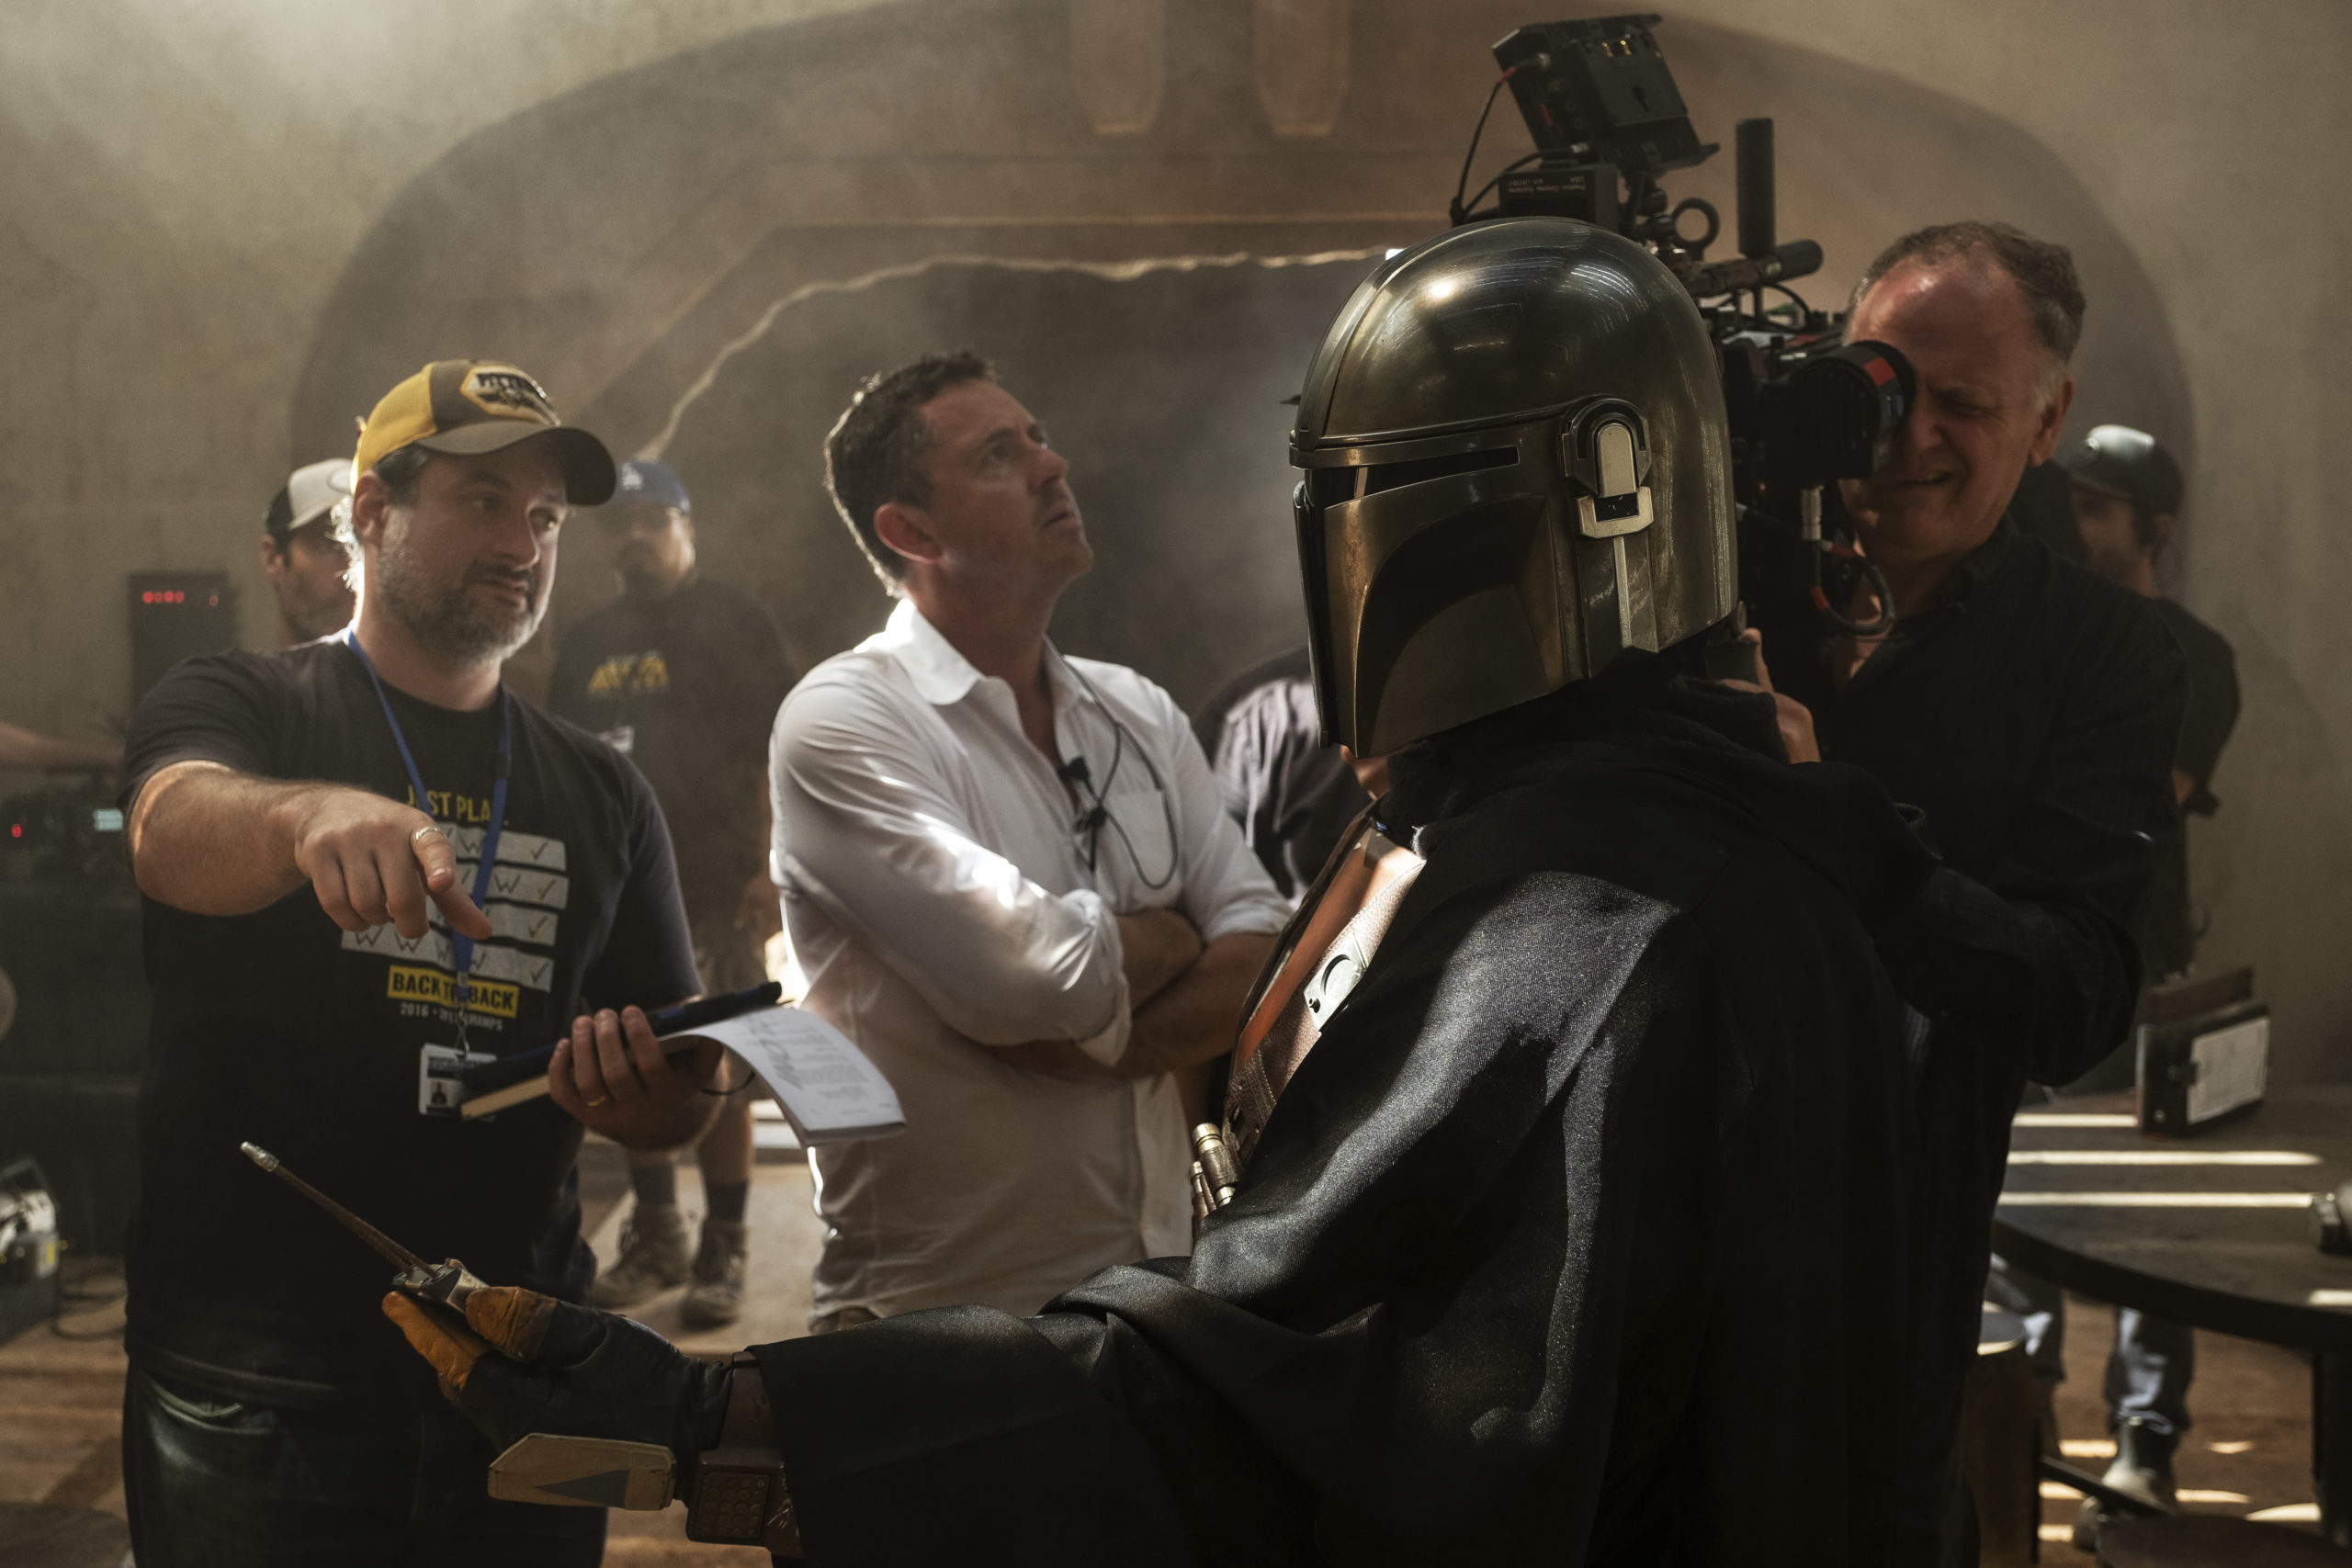 Dave Filoni, Greig Fraser, ASC, ACS, and Baz Idoine on the set of The Mandalorian